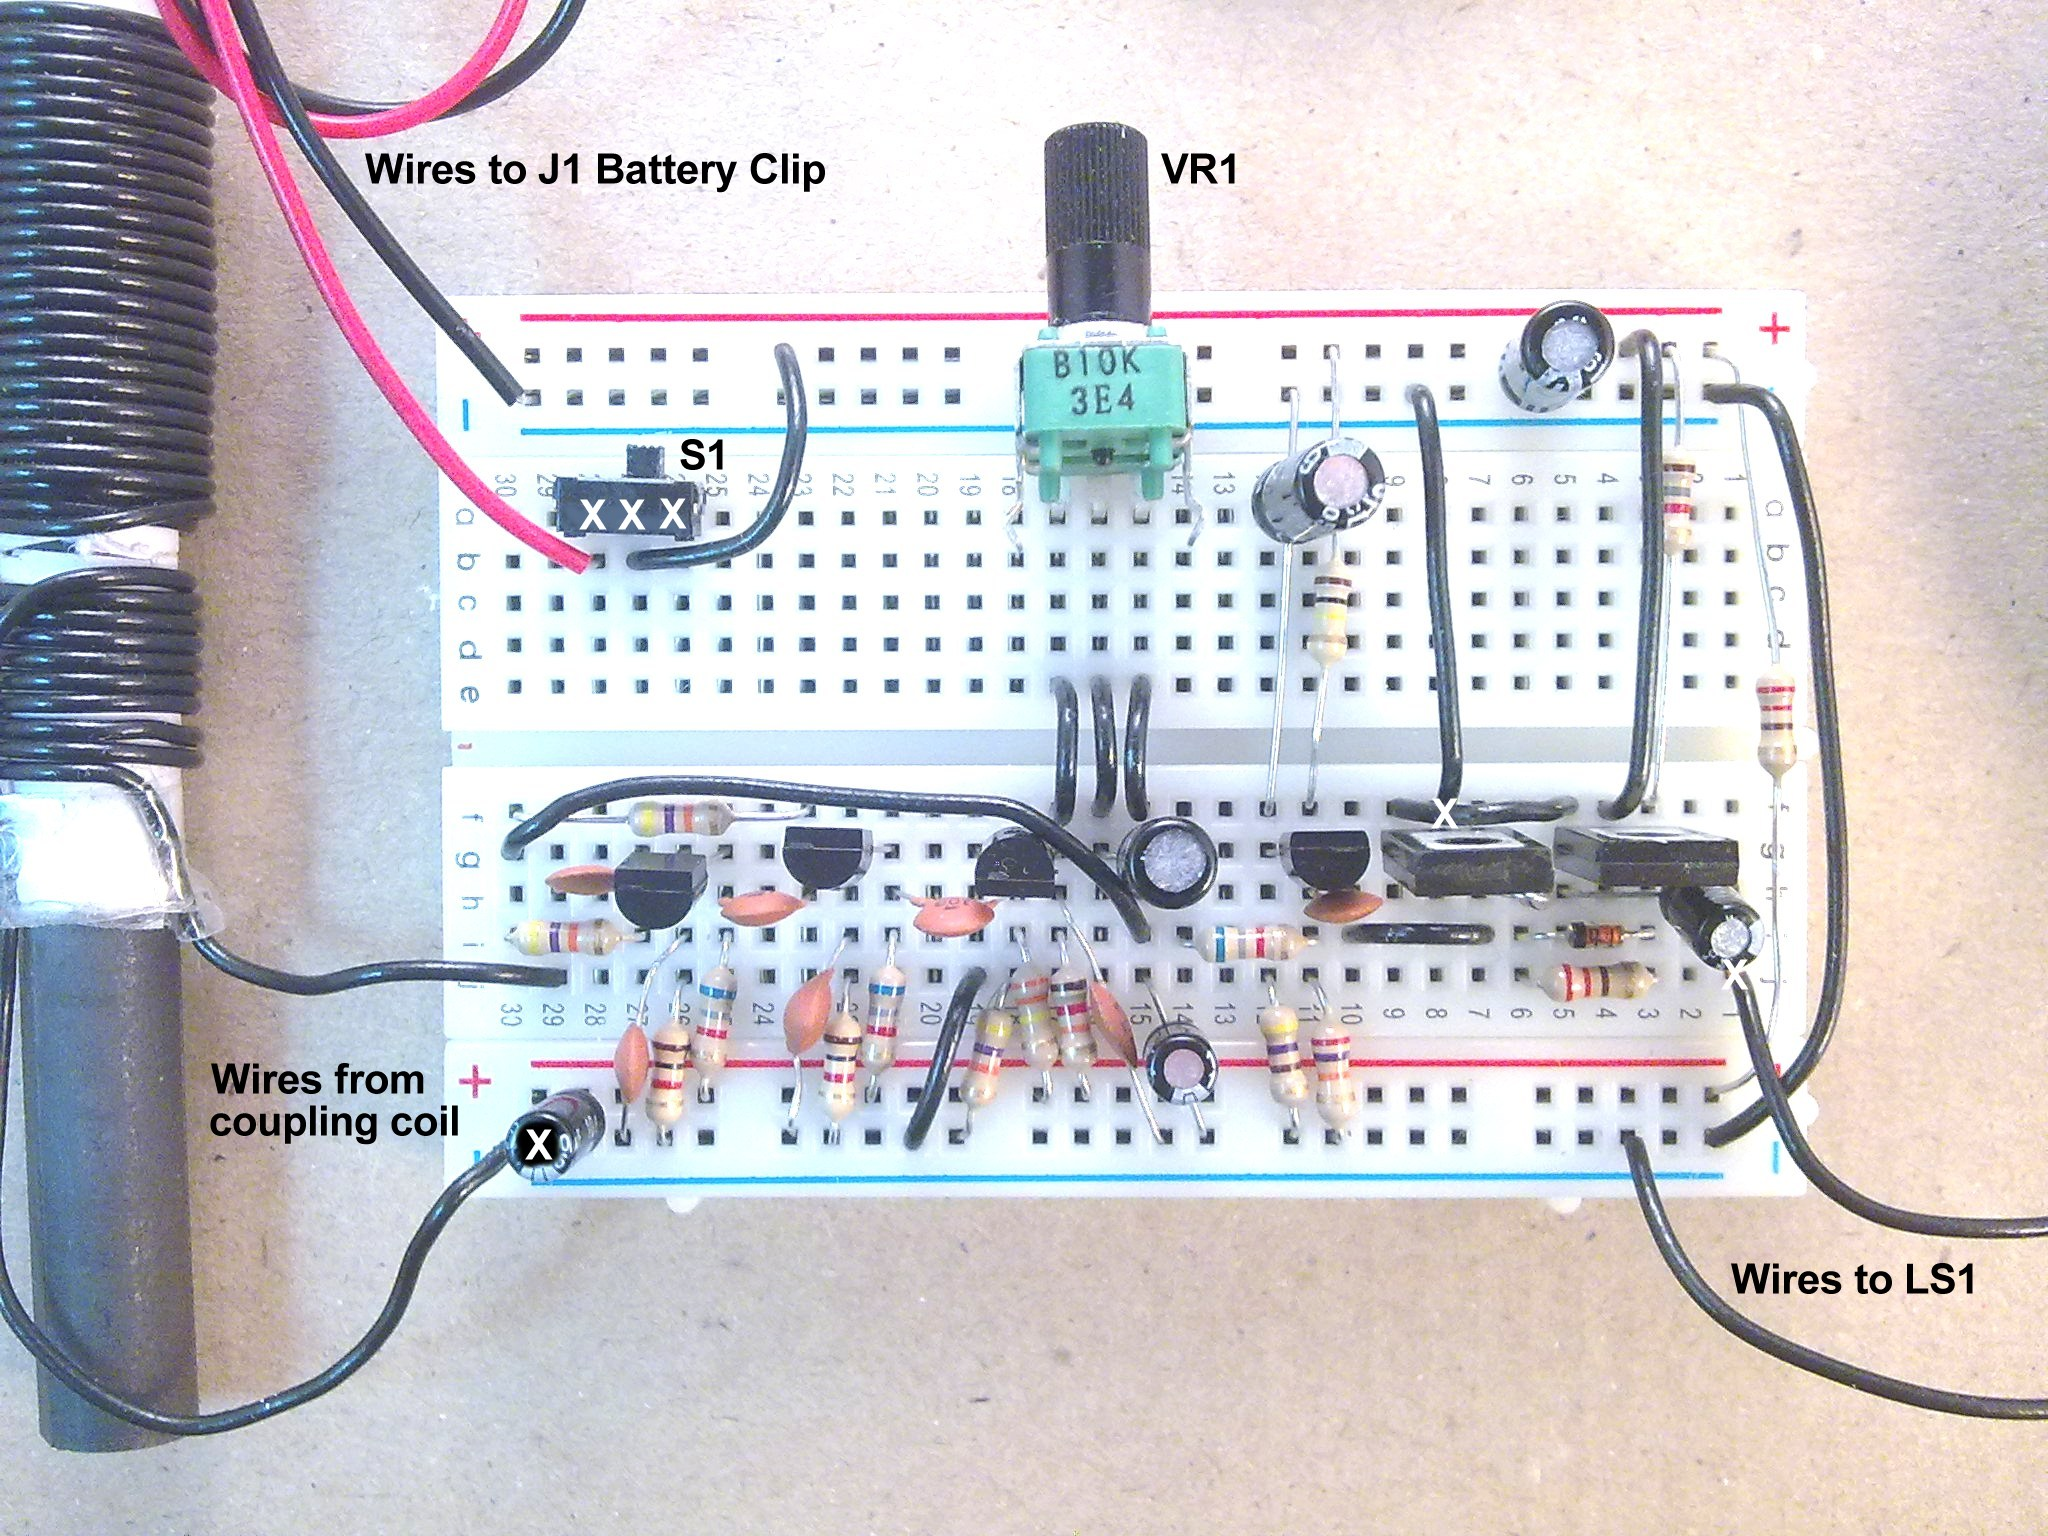 Useful Components Breadboard Transistor Radio Block Diagram Of Craft Electronics Mw On Prototype Board Complete Detail